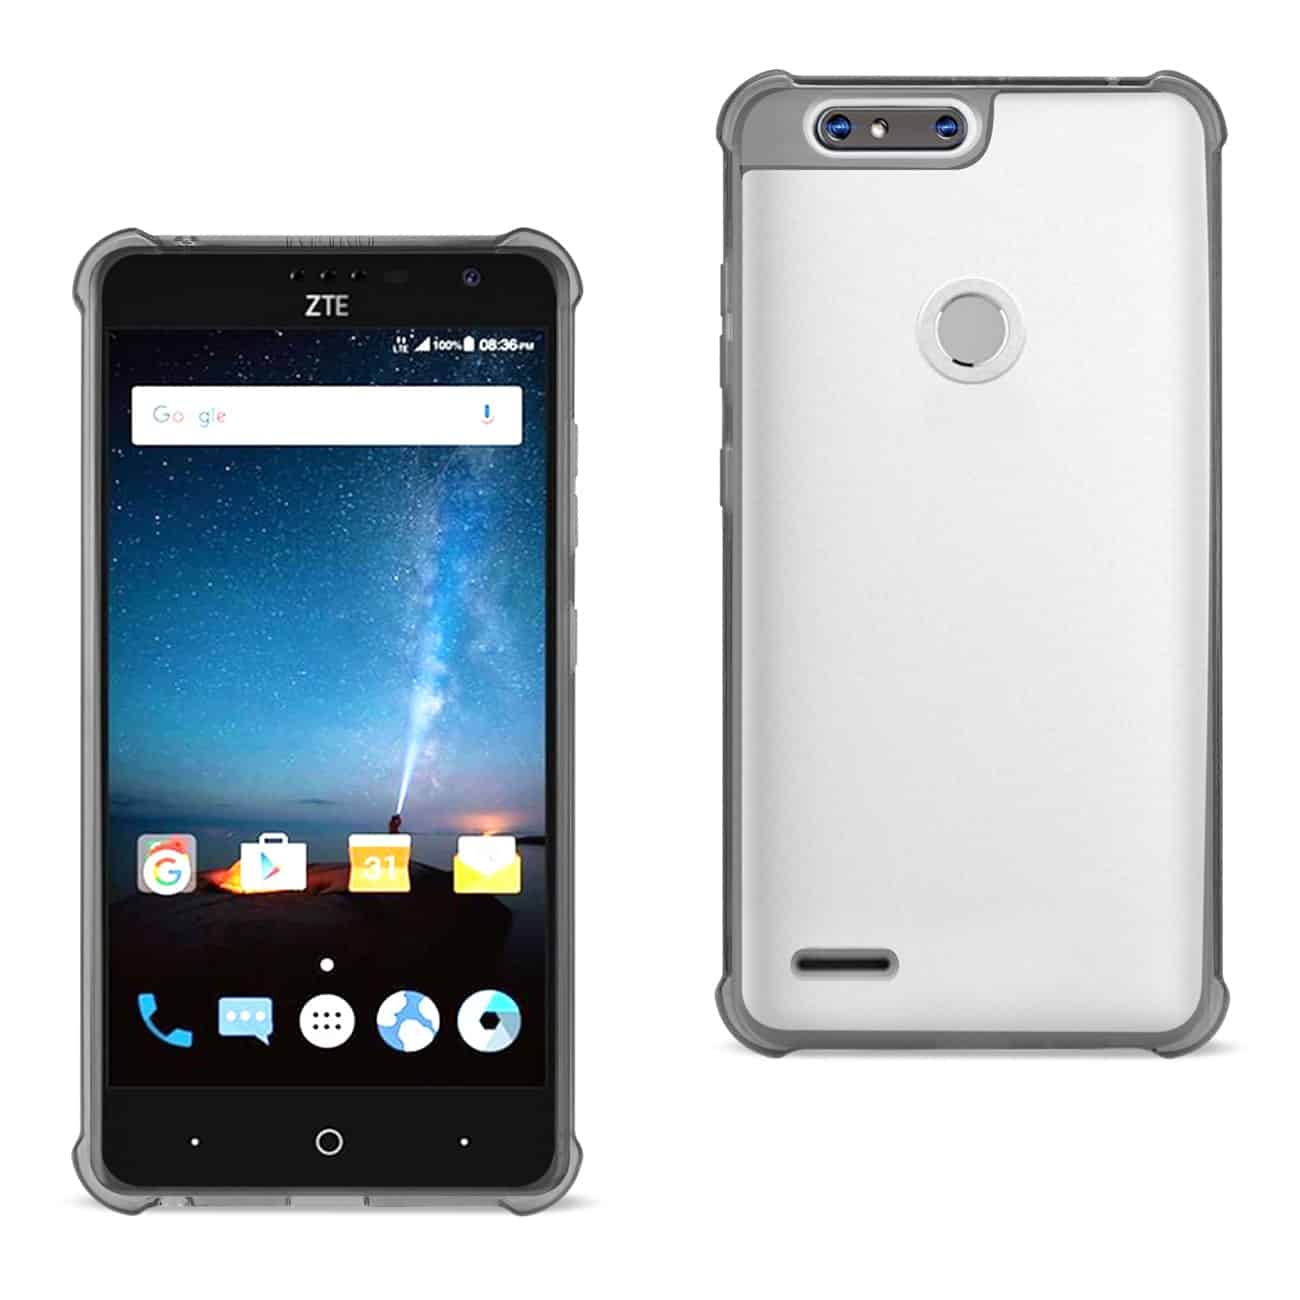 ZTE Blade Z MAX/Z982/ZTE Sequoia Clear Bumper Case With Air Cushion Protection In Clear Black